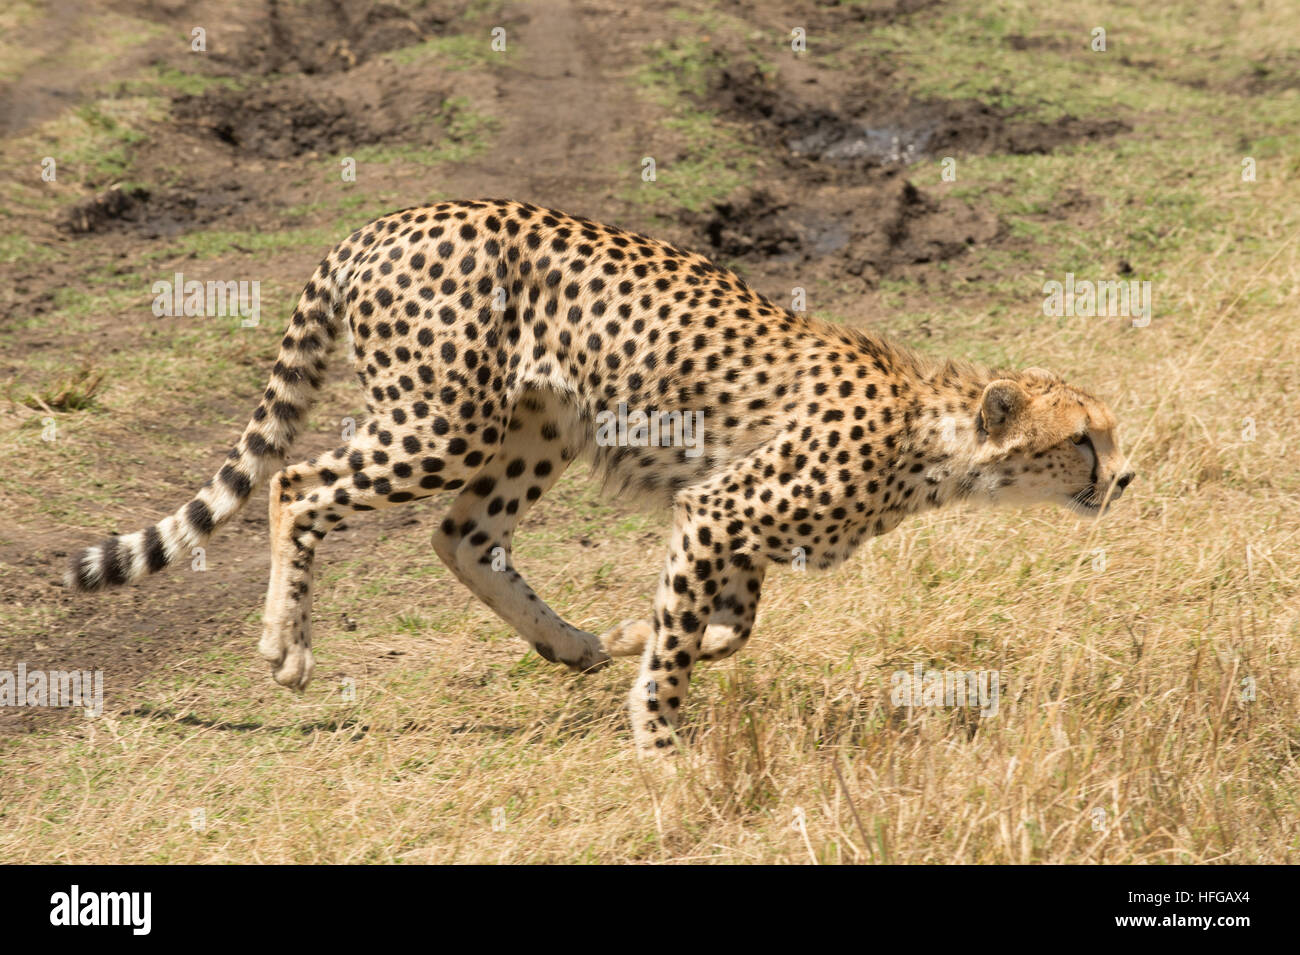 Gepard läuft in Rasen Stockbild